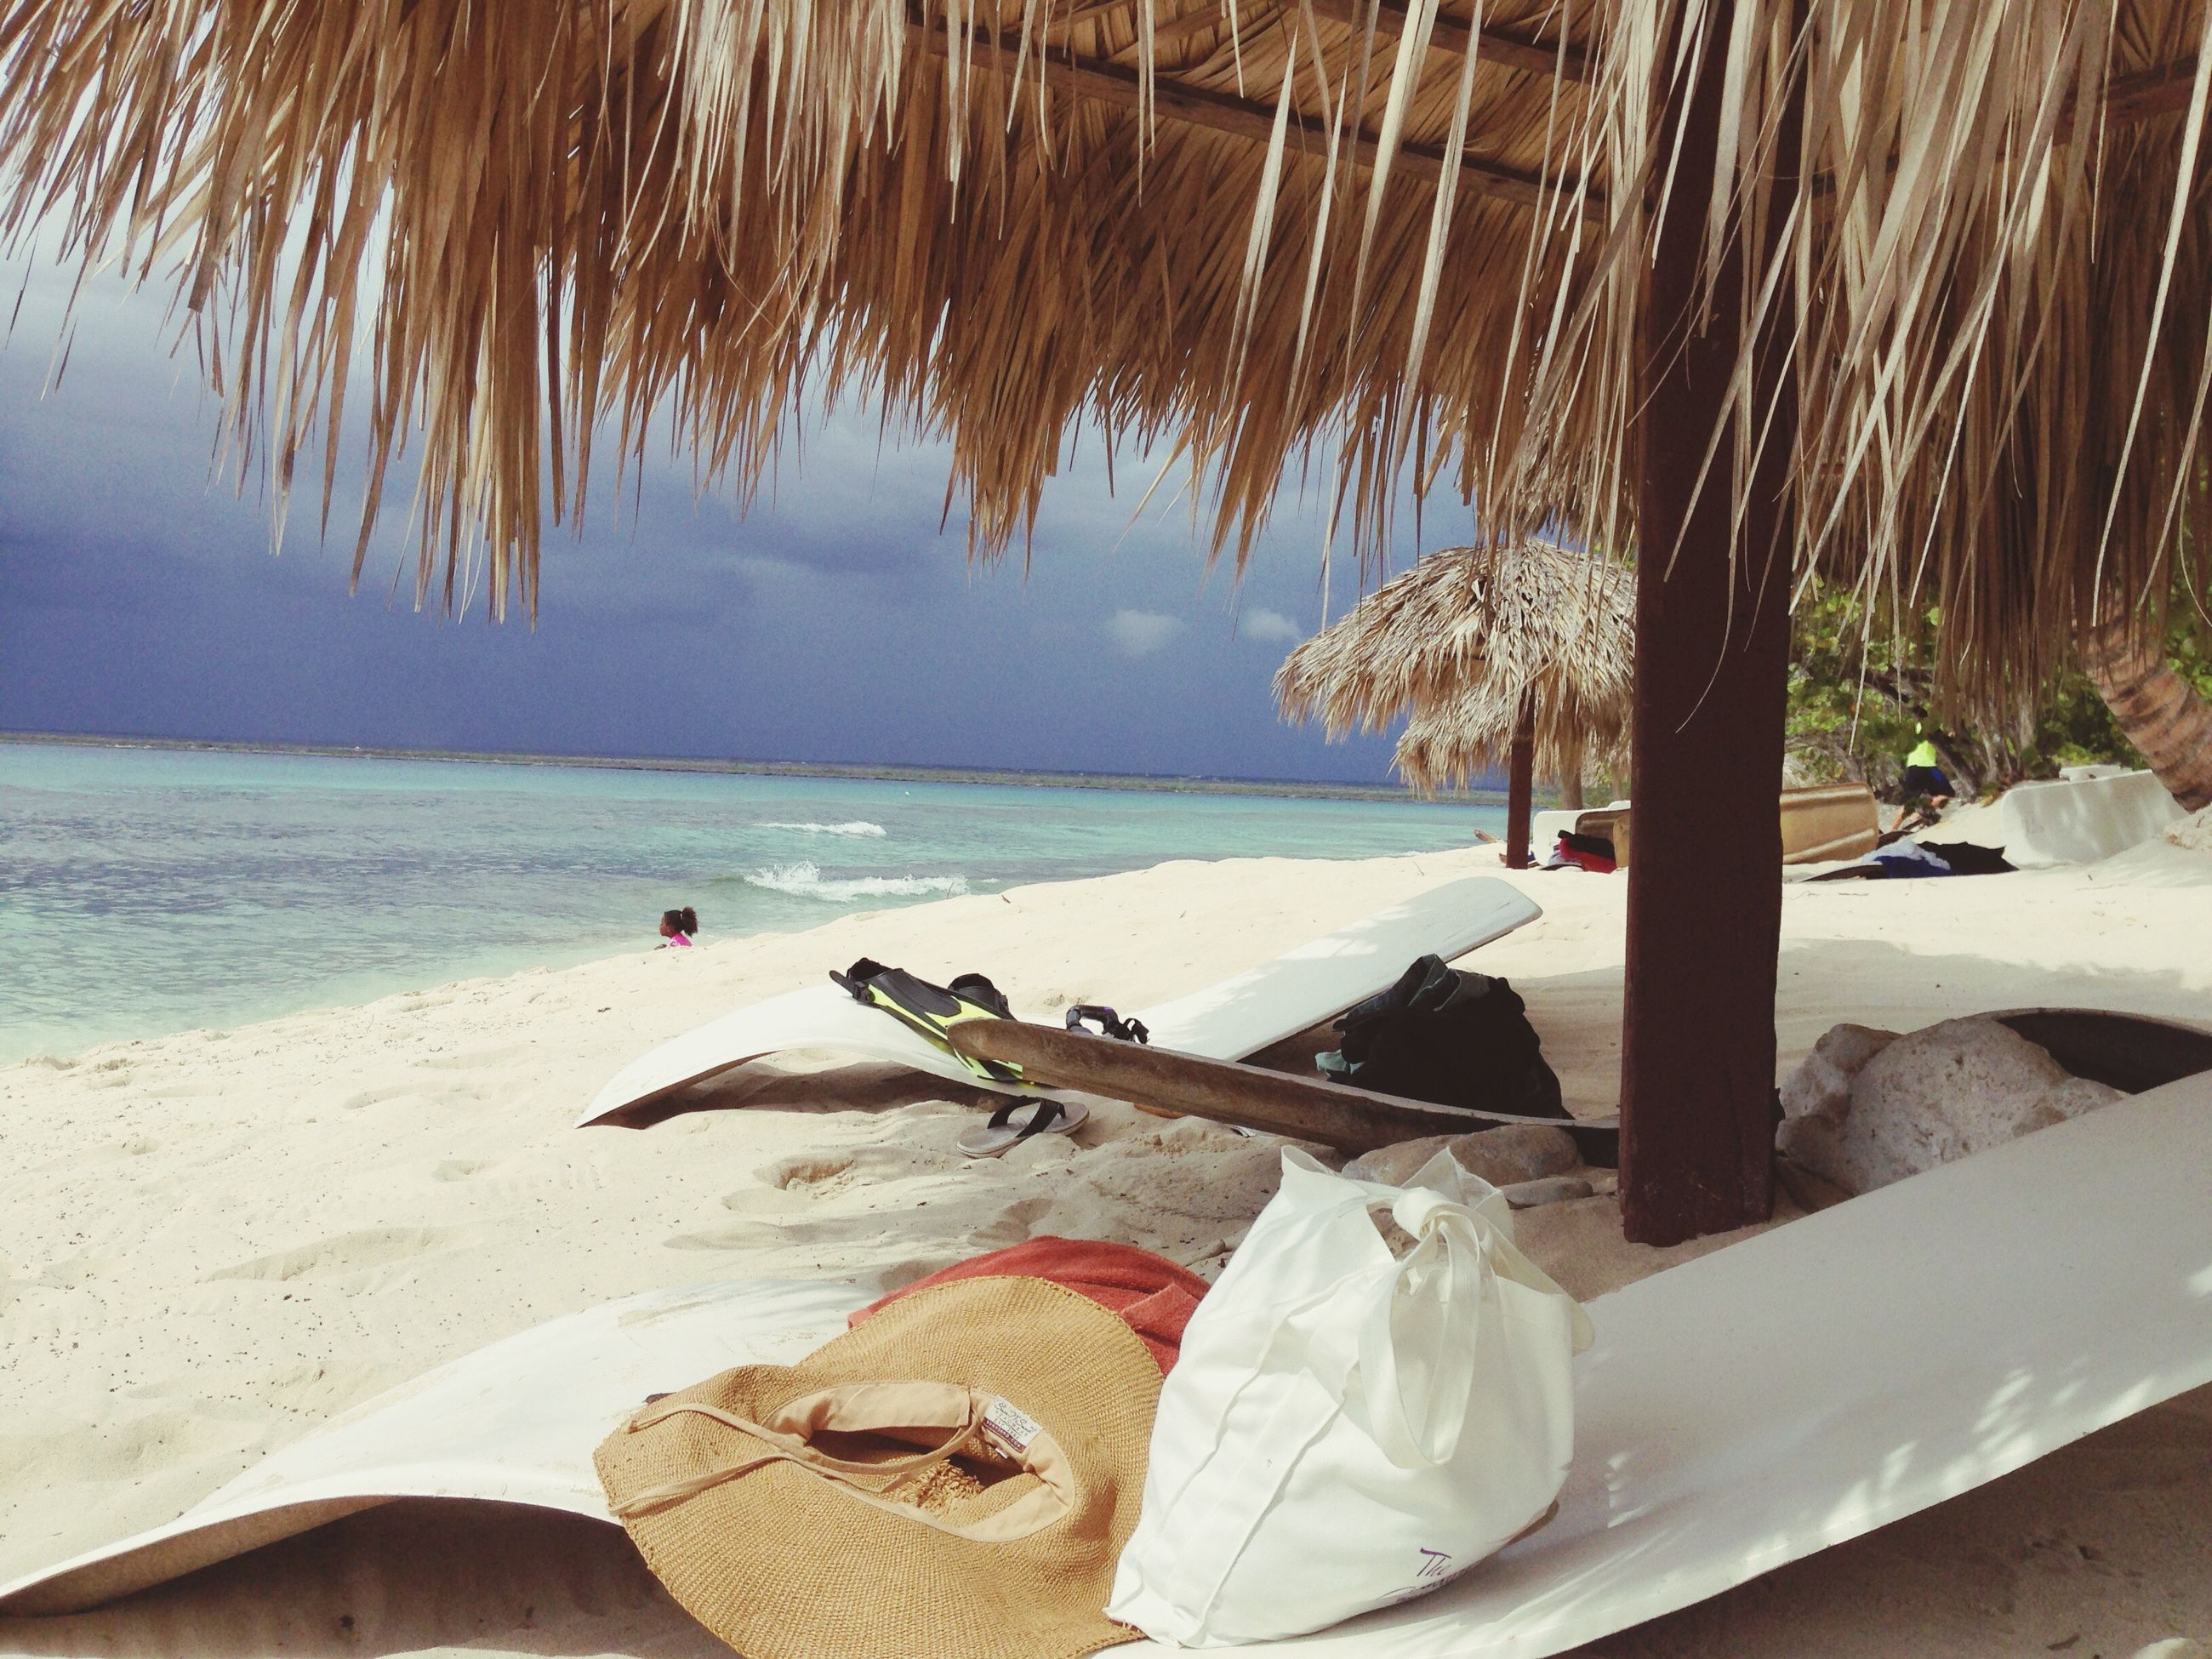 beach, sea, sand, shore, horizon over water, water, tranquility, tranquil scene, nature, chair, relaxation, sky, wood - material, lounge chair, sunlight, beauty in nature, vacations, day, scenics, deck chair